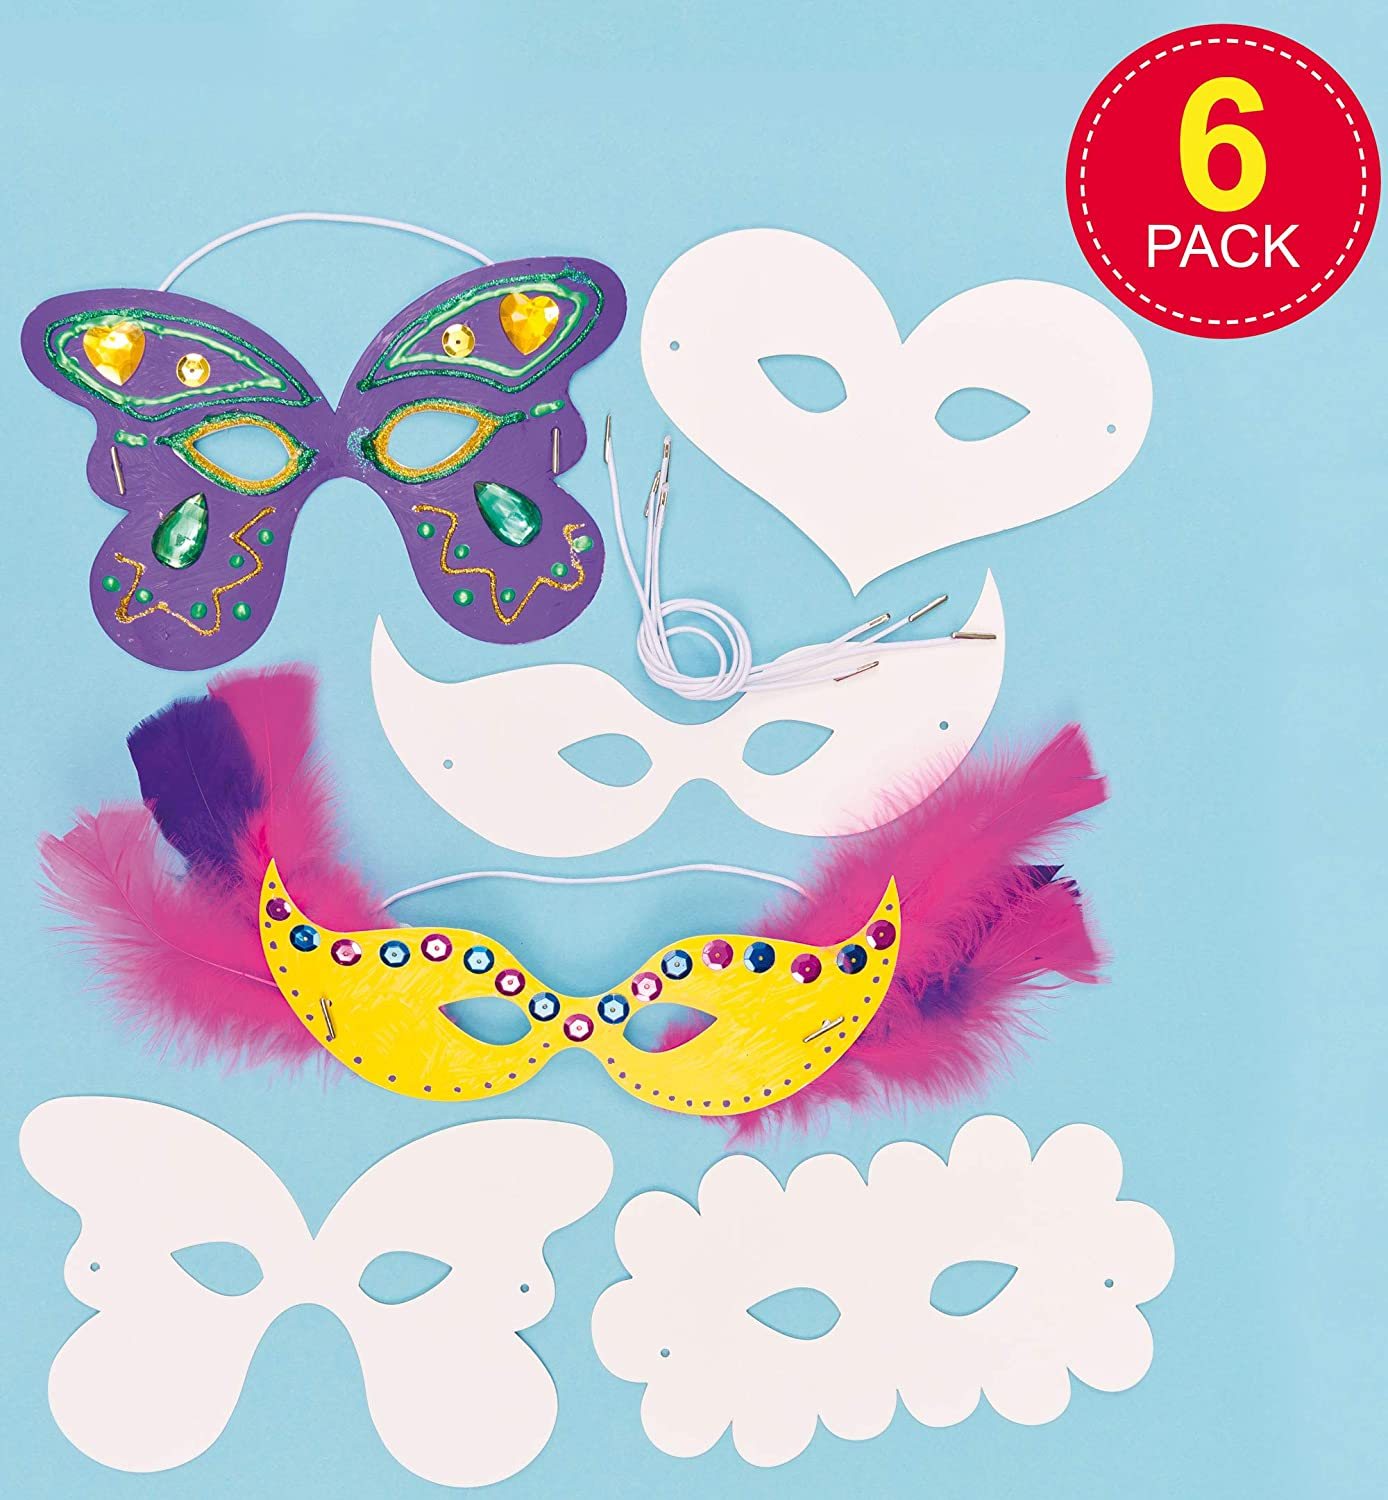 16 Assorted White Card Craft Masks for Kids to Decorate for Crafts